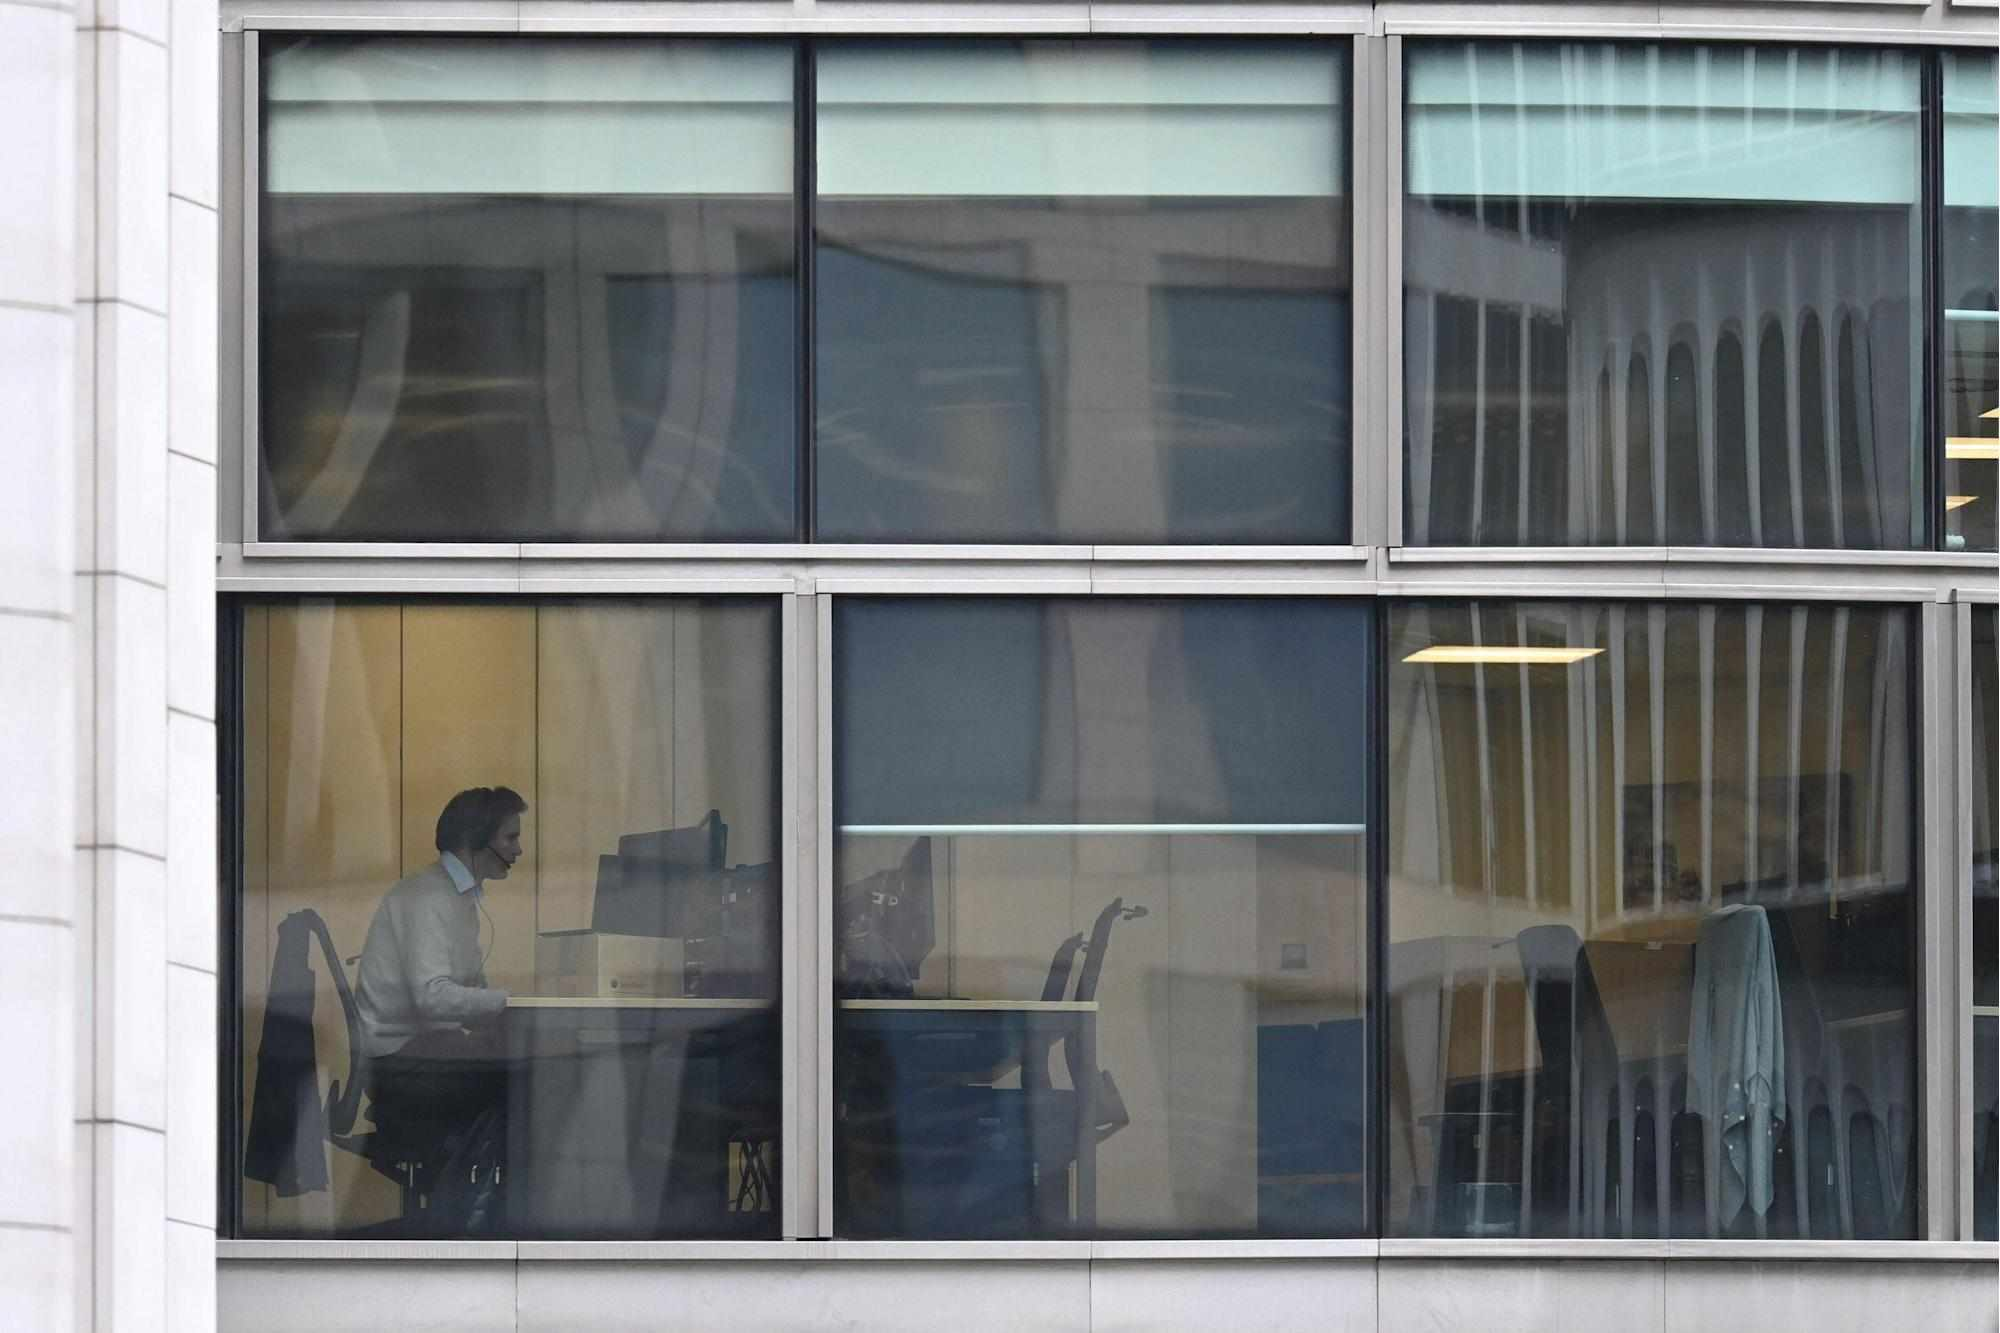 office workers bosses asked would